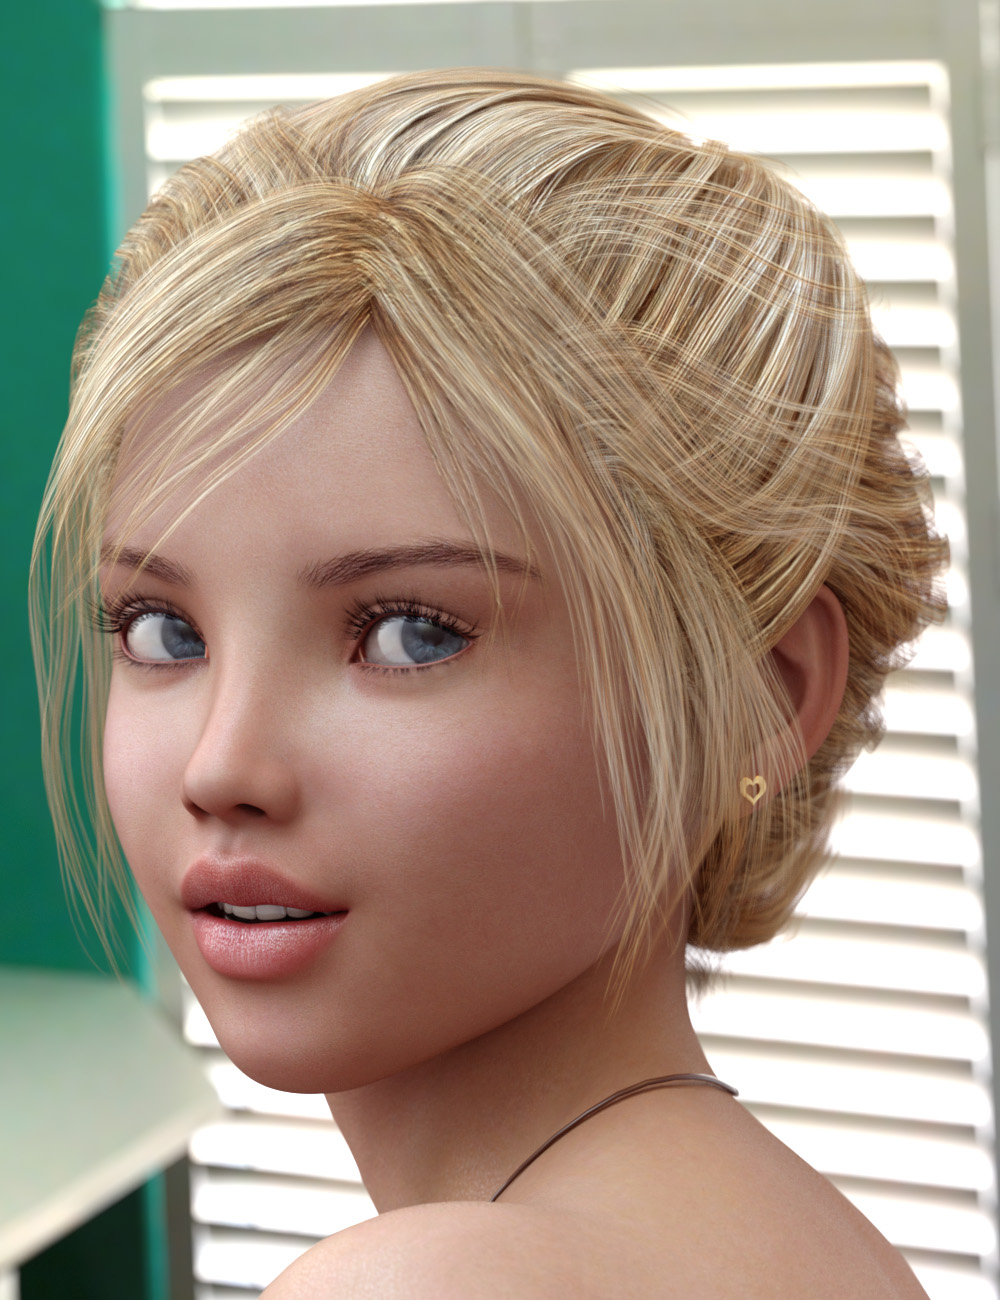 Fantasy Hair for Genesis 3 Female(s) by: 3D Universe, 3D Models by Daz 3D